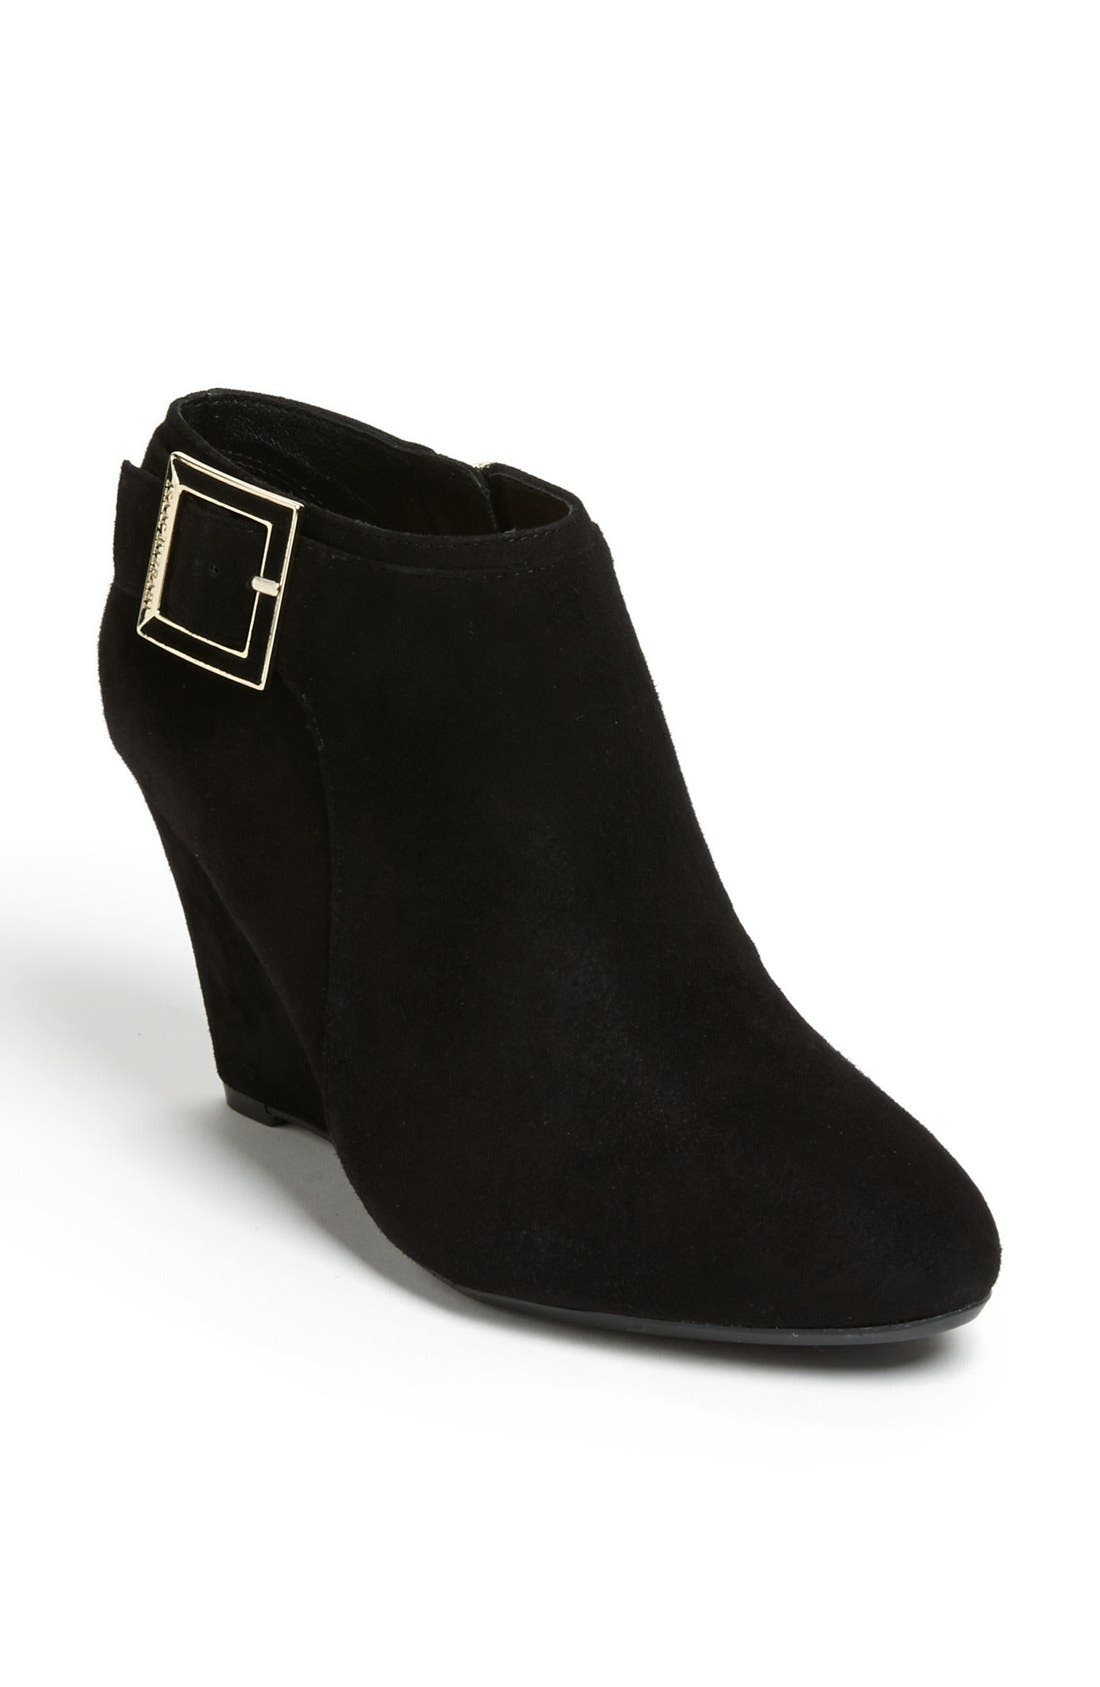 Alternate Image 1 Selected - Isaac Mizrahi New York 'Winona' Bootie